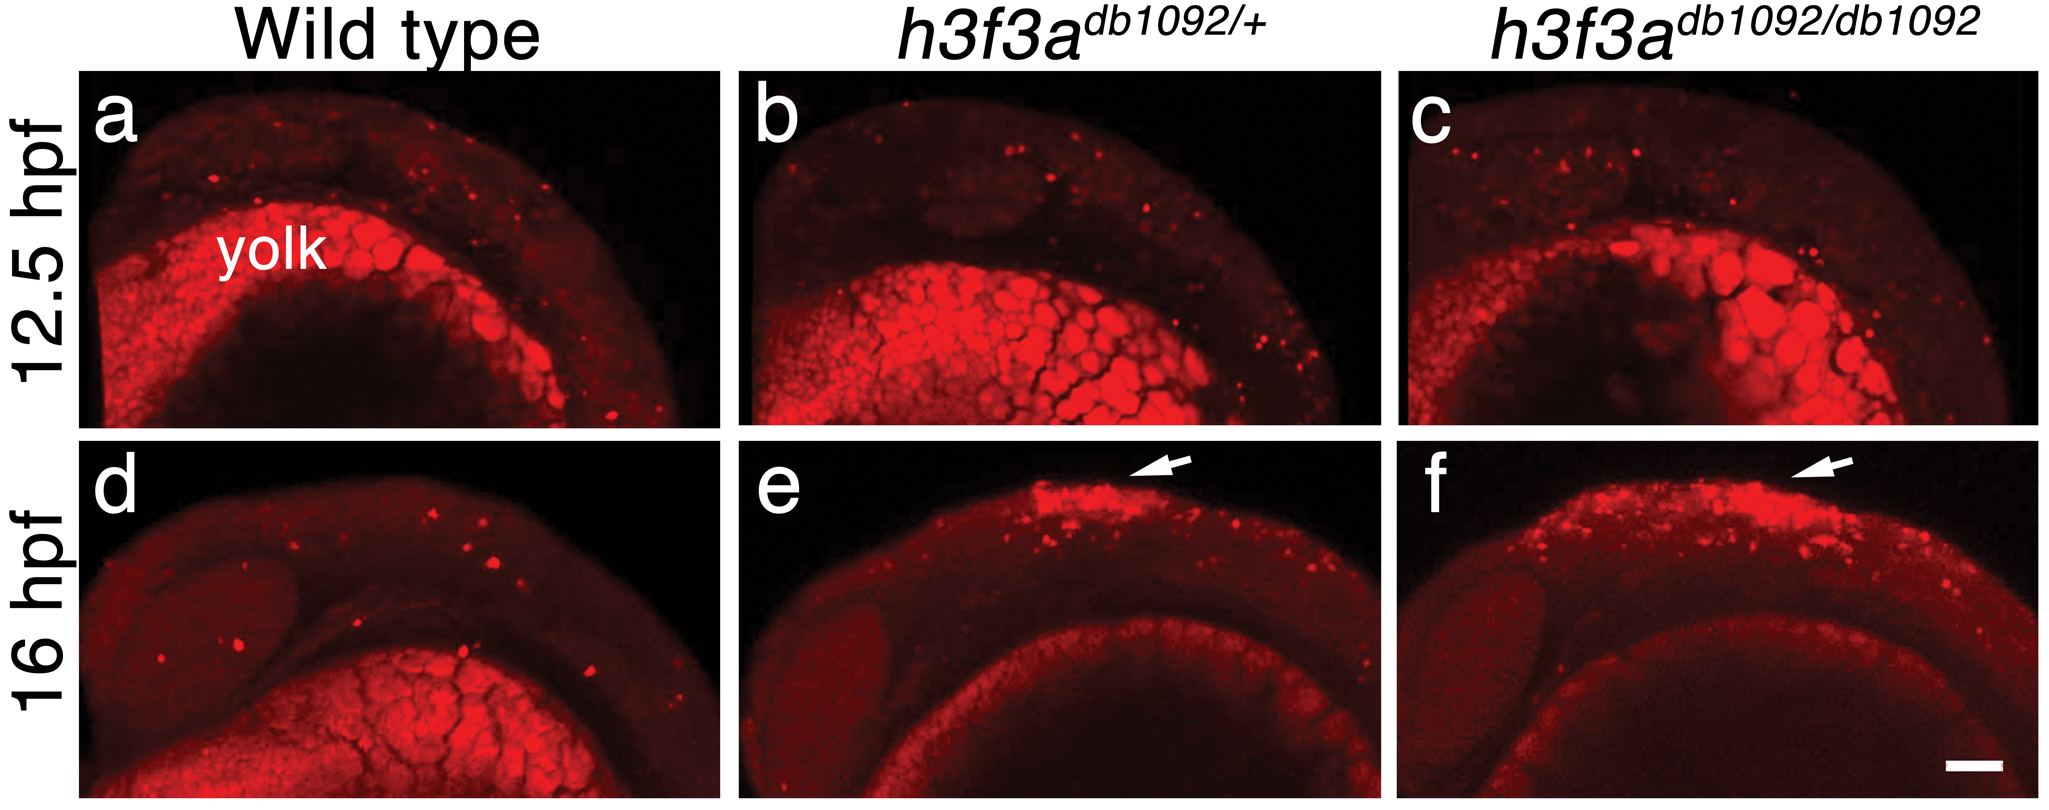 Cell death in <i>h3f3a<sup>db1092</sup></i> embryos.